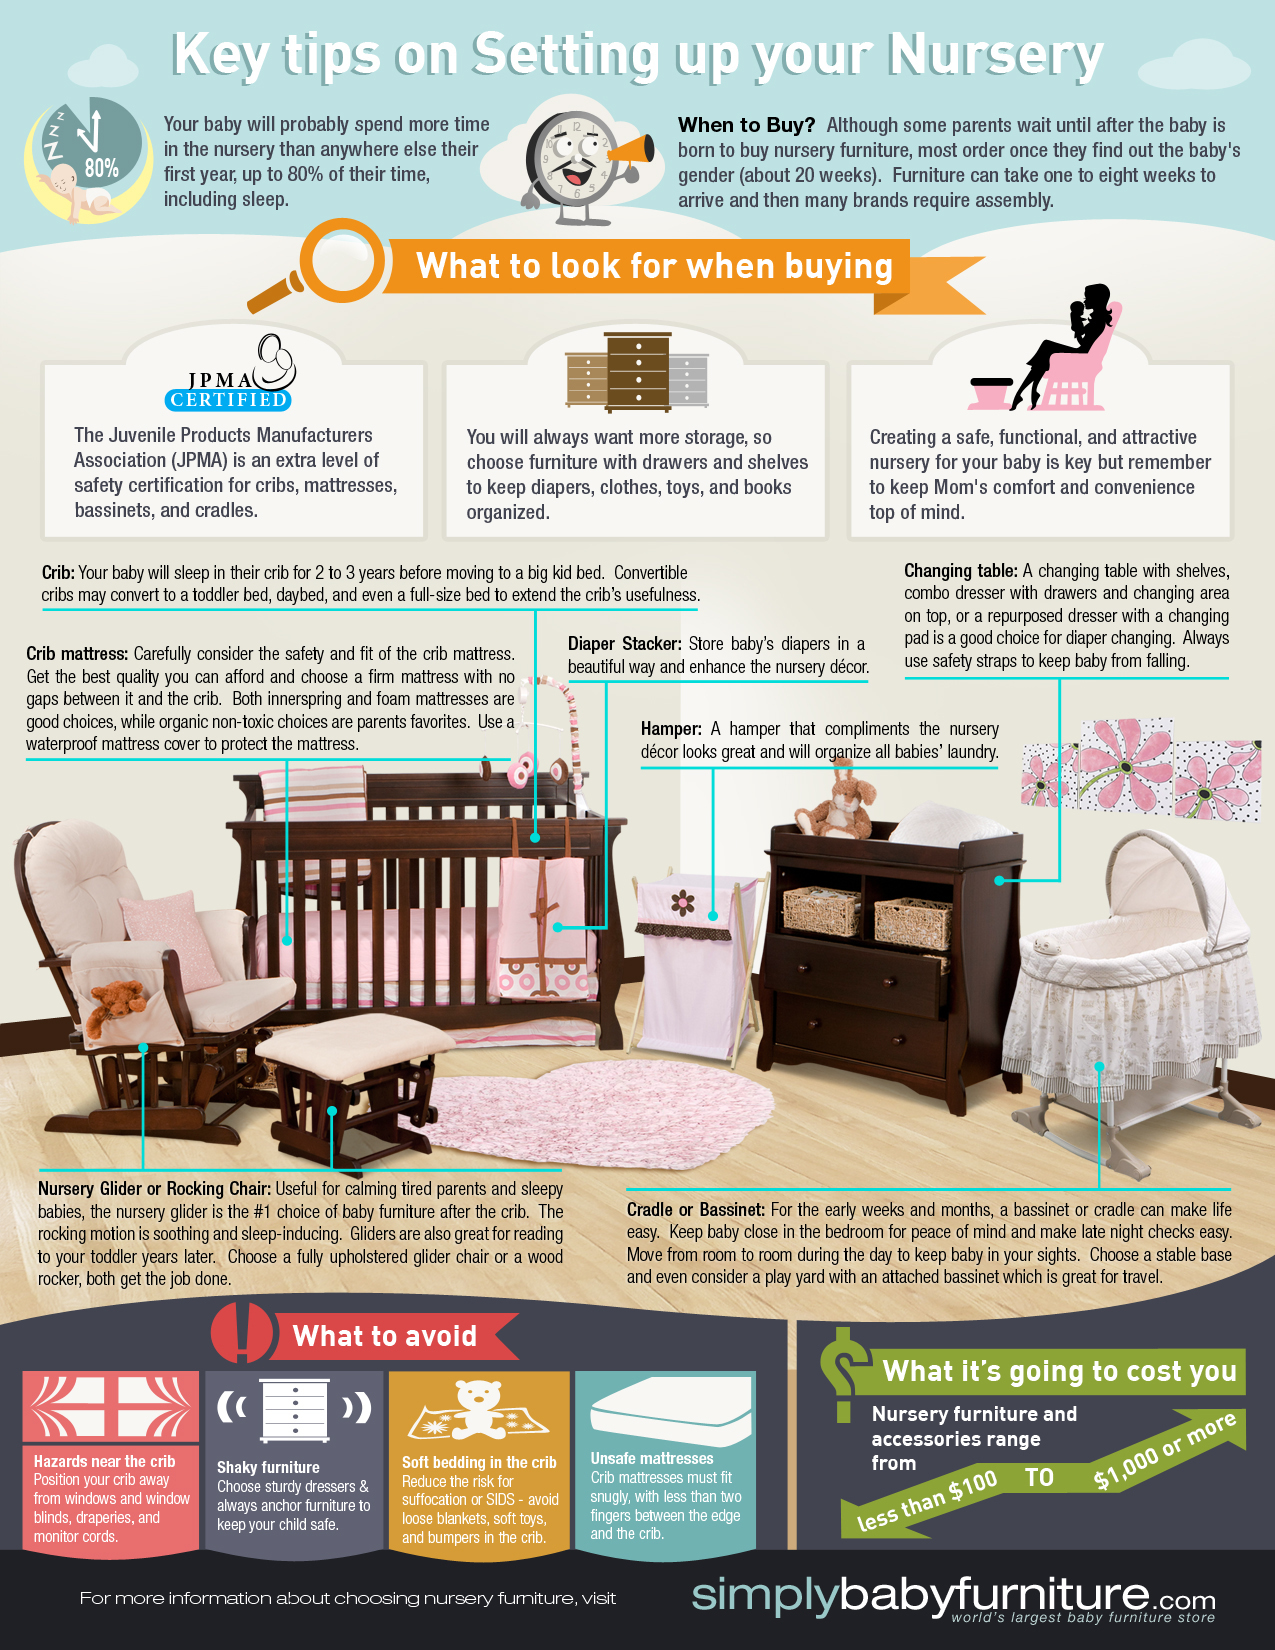 How to Set Up Your Nursery